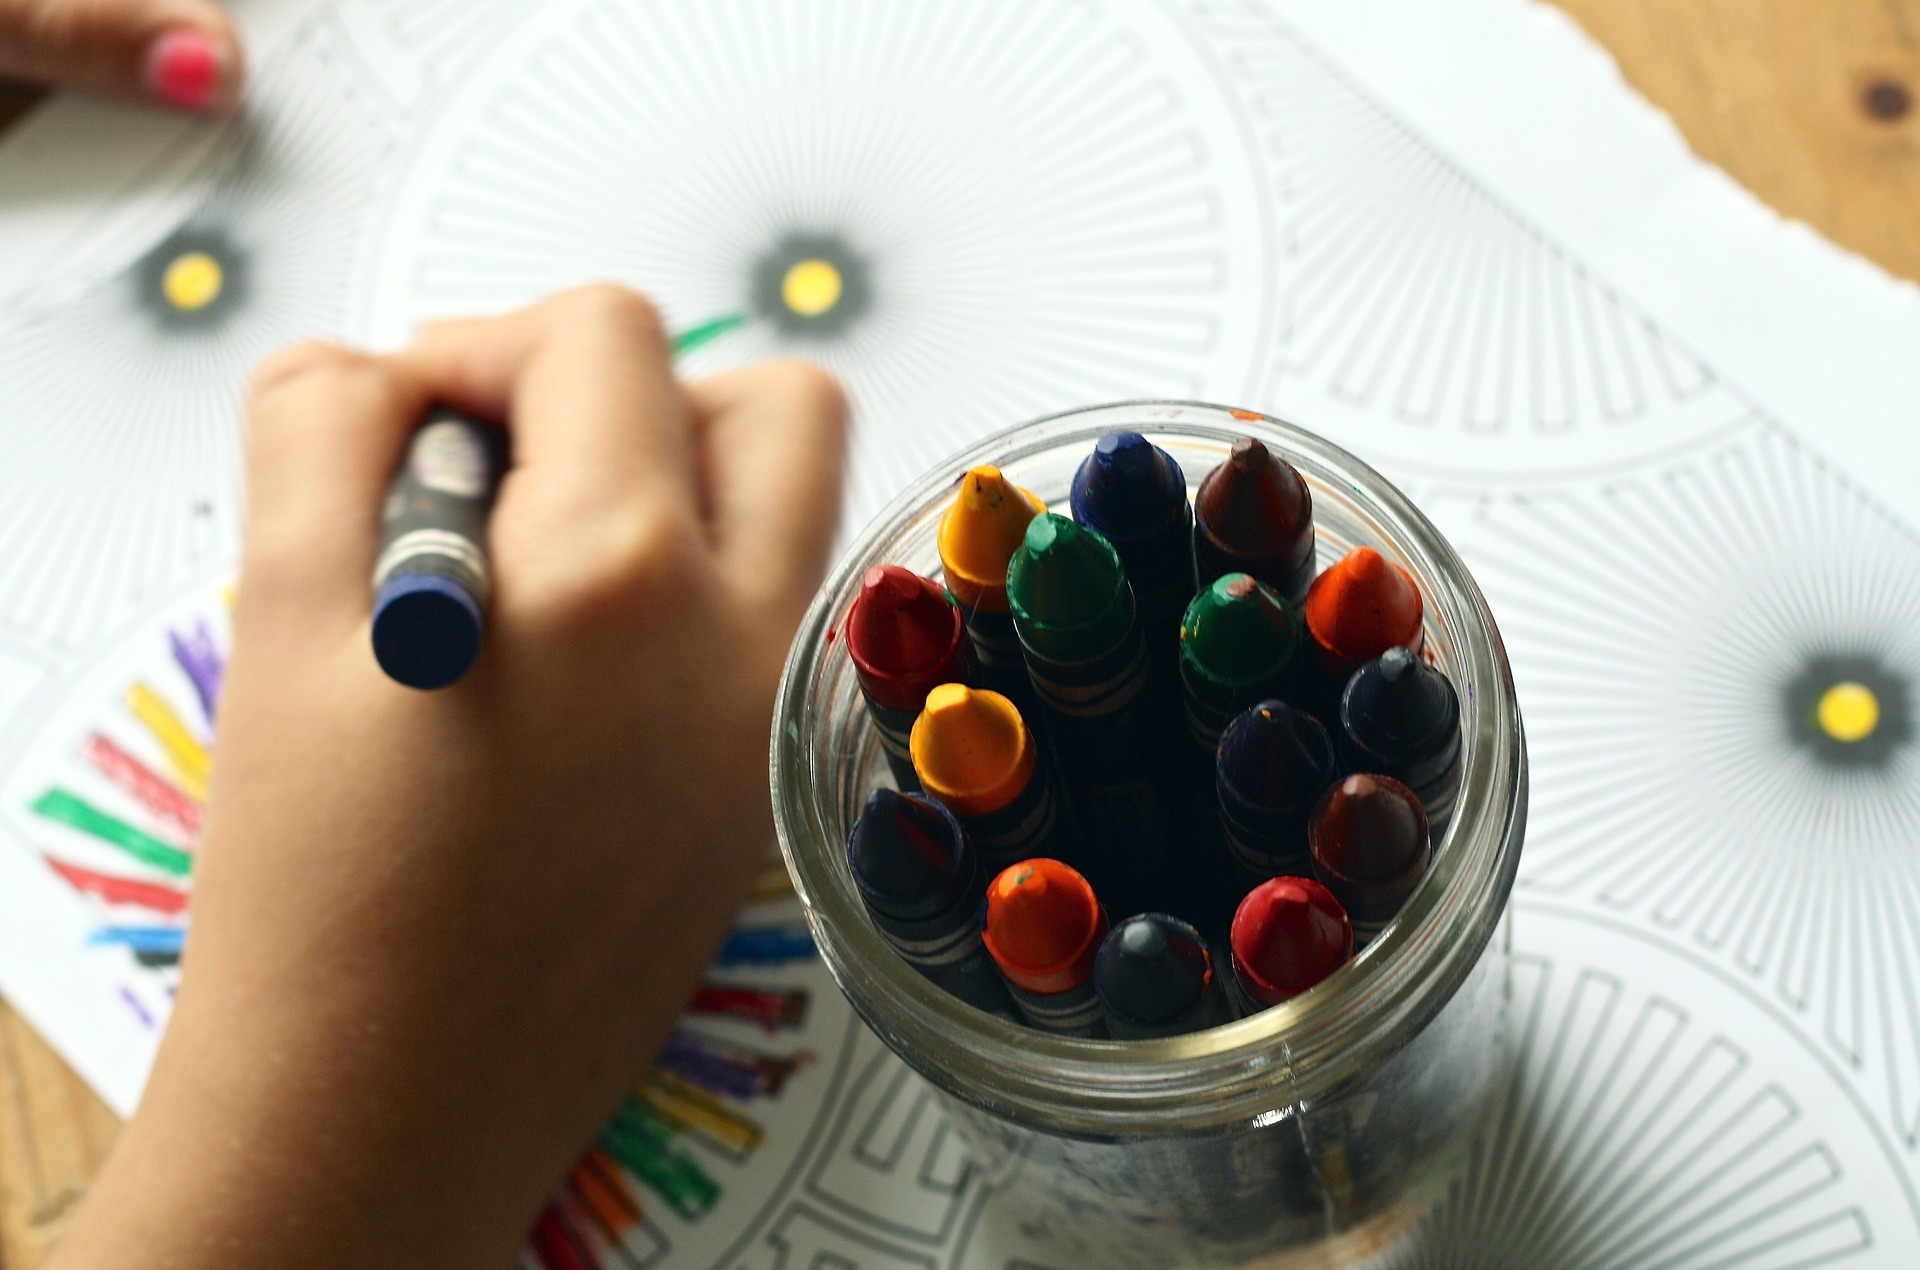 Private schools offer students more creative activities and one-on-one time with teachers than public schools do.